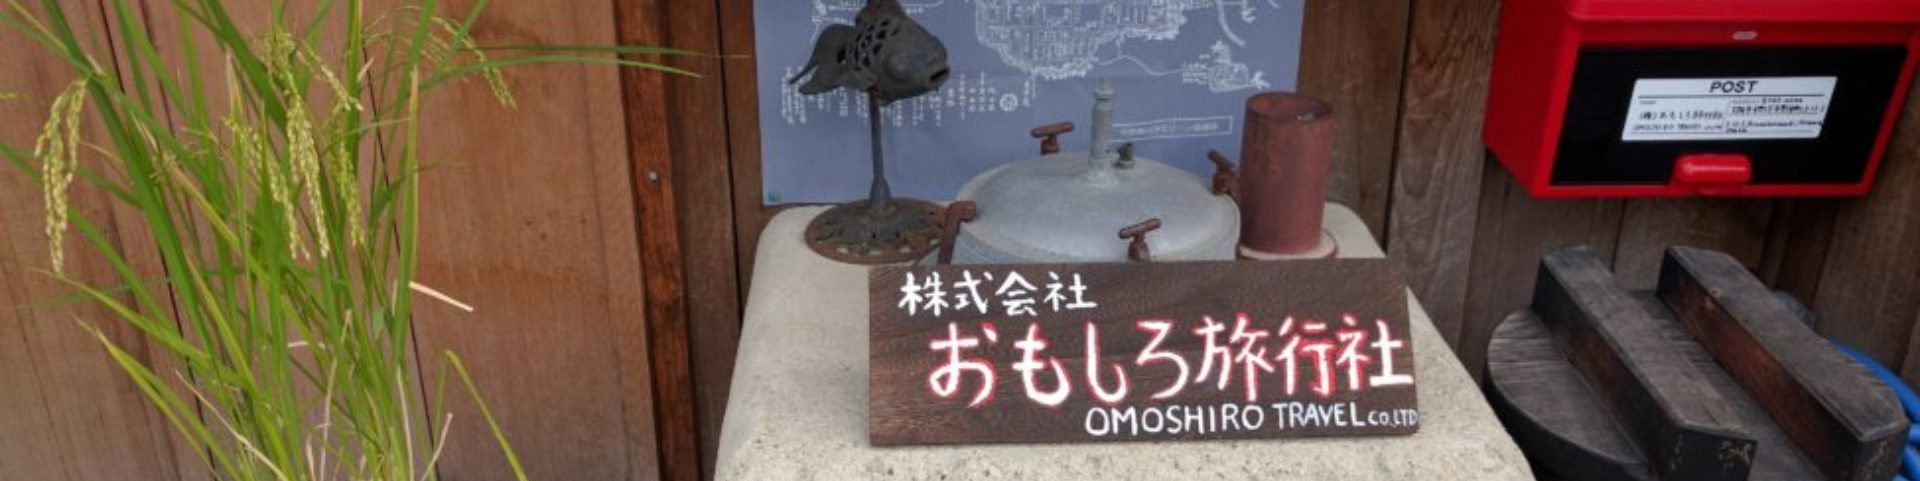 OMOSHIRO TRAVEL